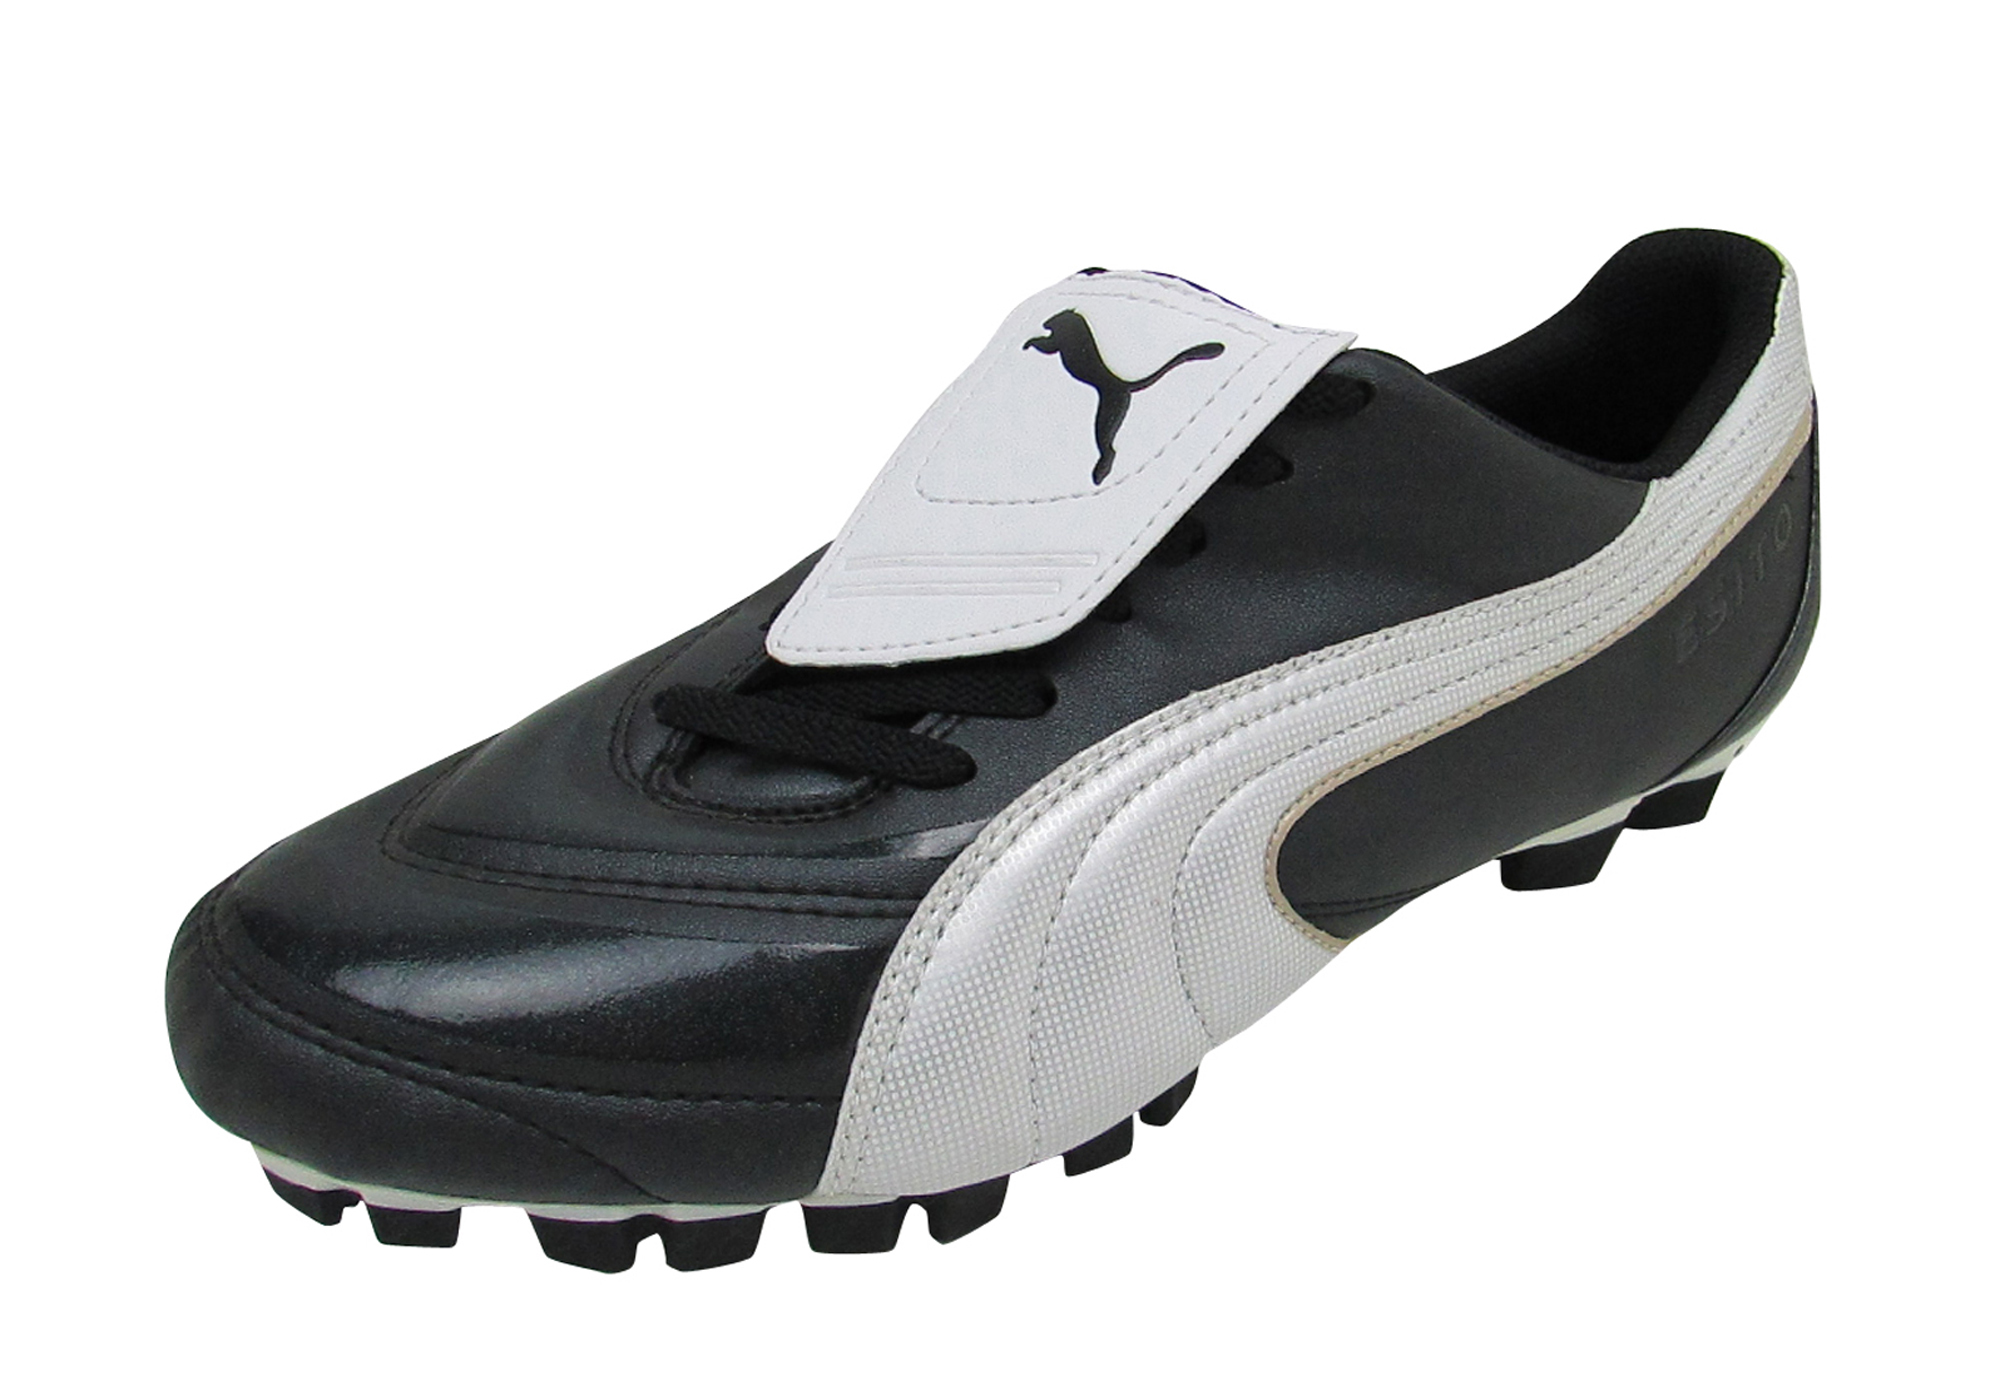 Mens Puma Esito II GC i FG Football Boots Firm Ground Soccer Cleats Boot  101159 4121a7414e9